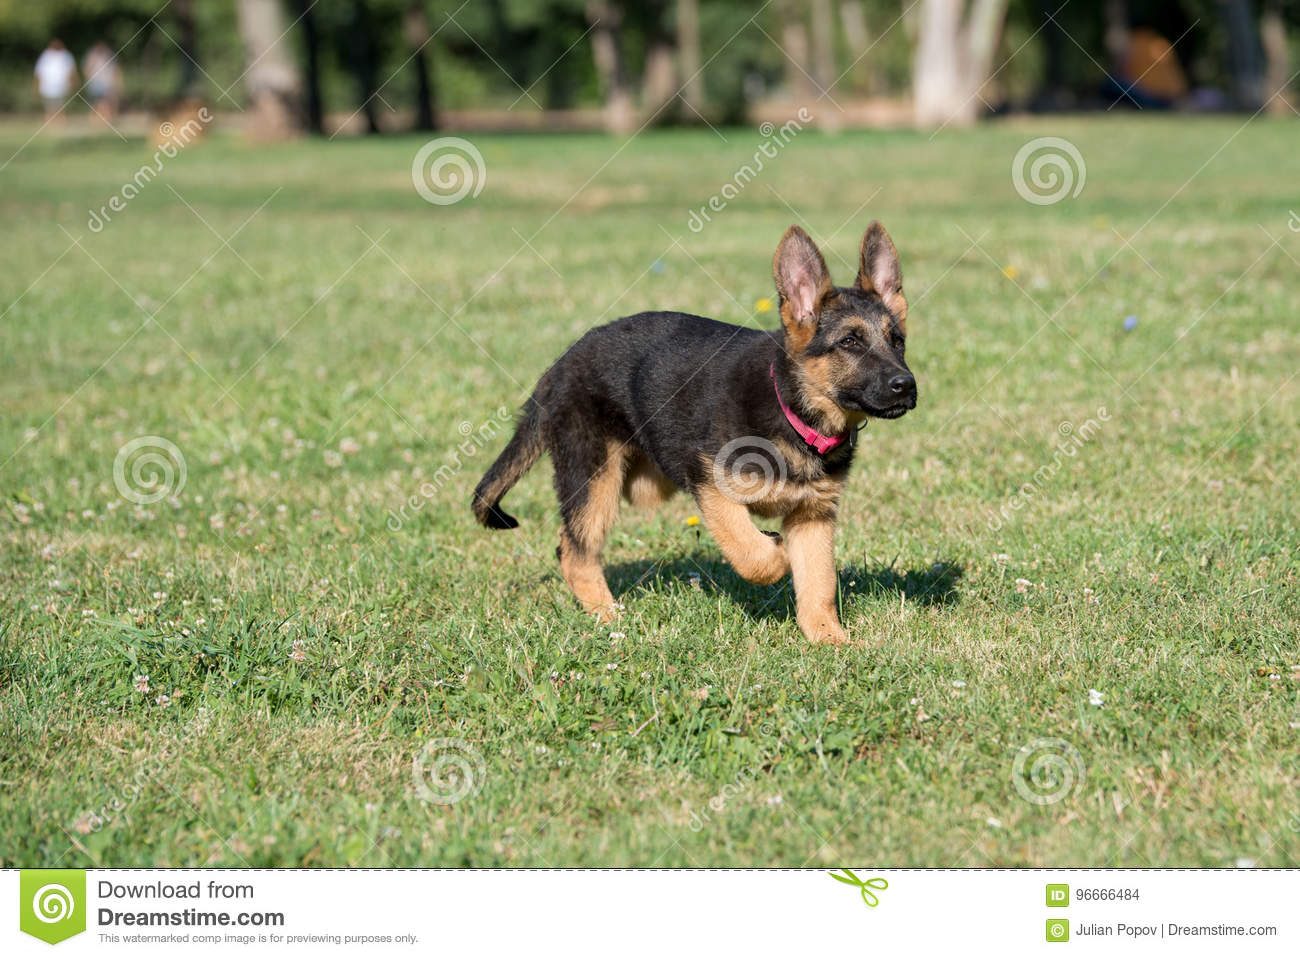 Young Brown German Shepherd Puppy Dog On The Green Grass Stock Photo Image Of Jump Puppy 96666484